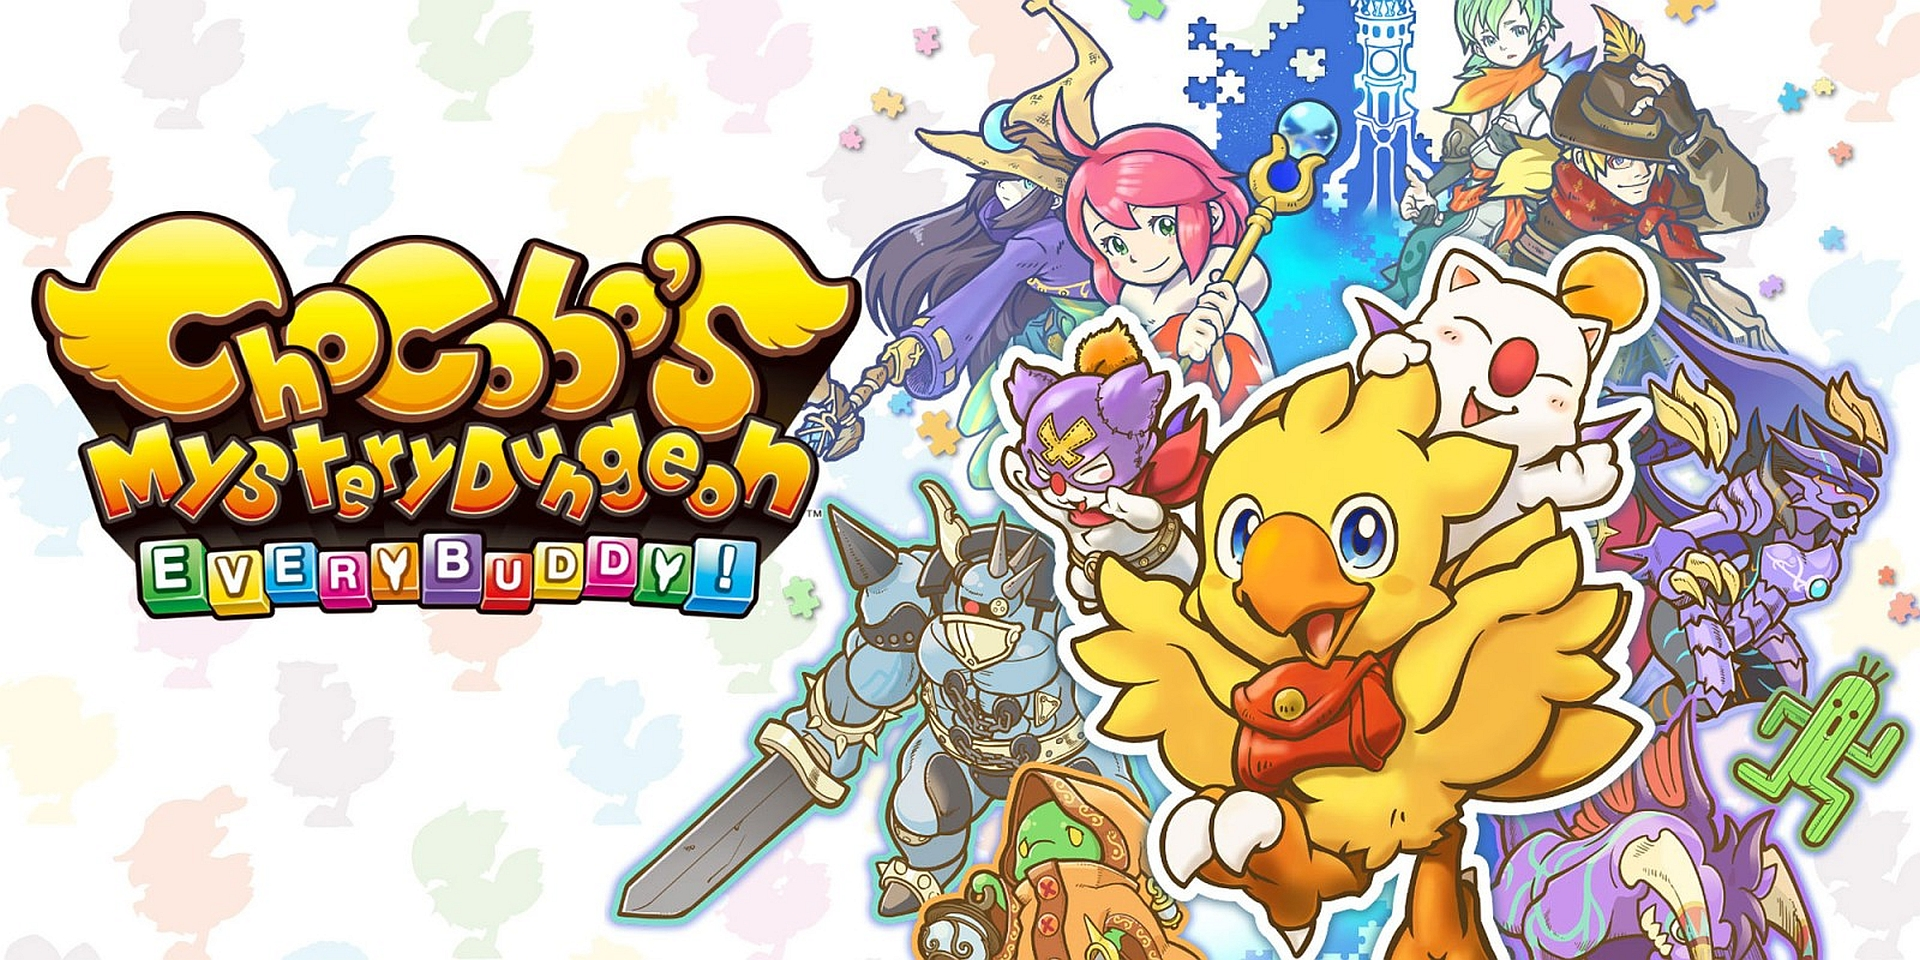 [Review] Chocobo's Mystery Dungeon Everybuddy!